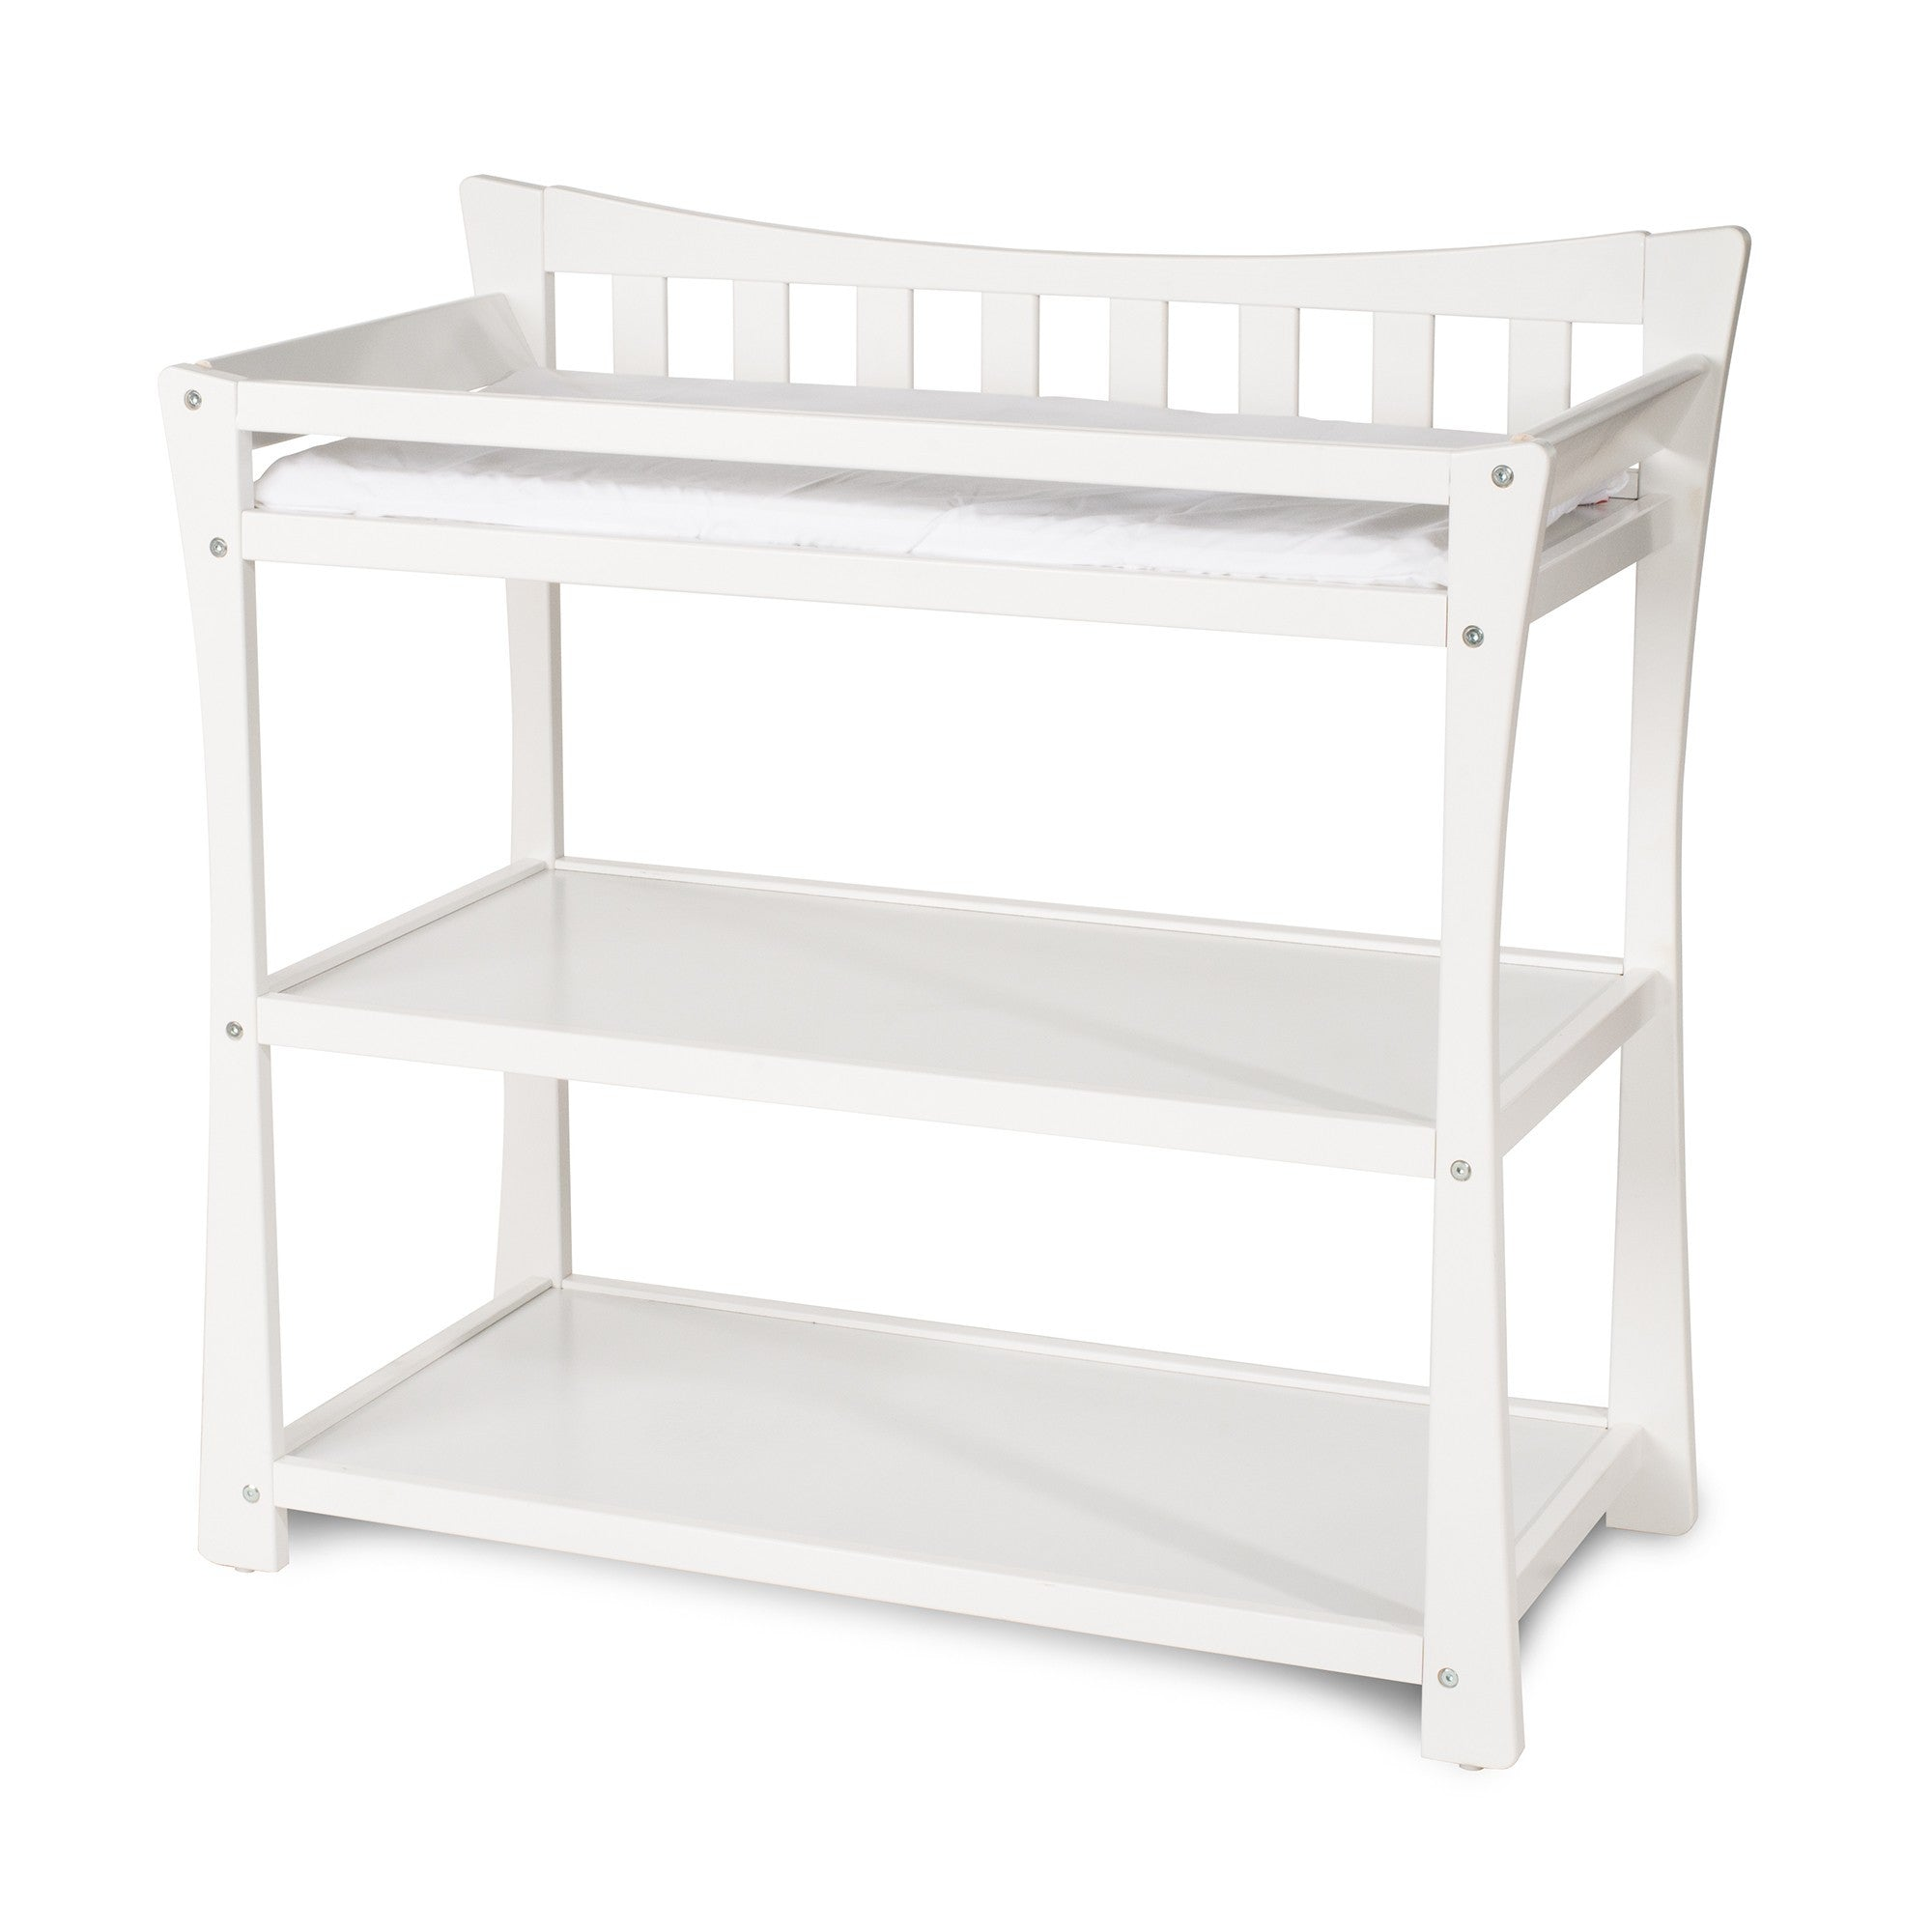 crib craft what shopping appliances online the points a bed more tools way london earn spin prod toddler weight child electronics mattress limit cribs is questions included your on shop